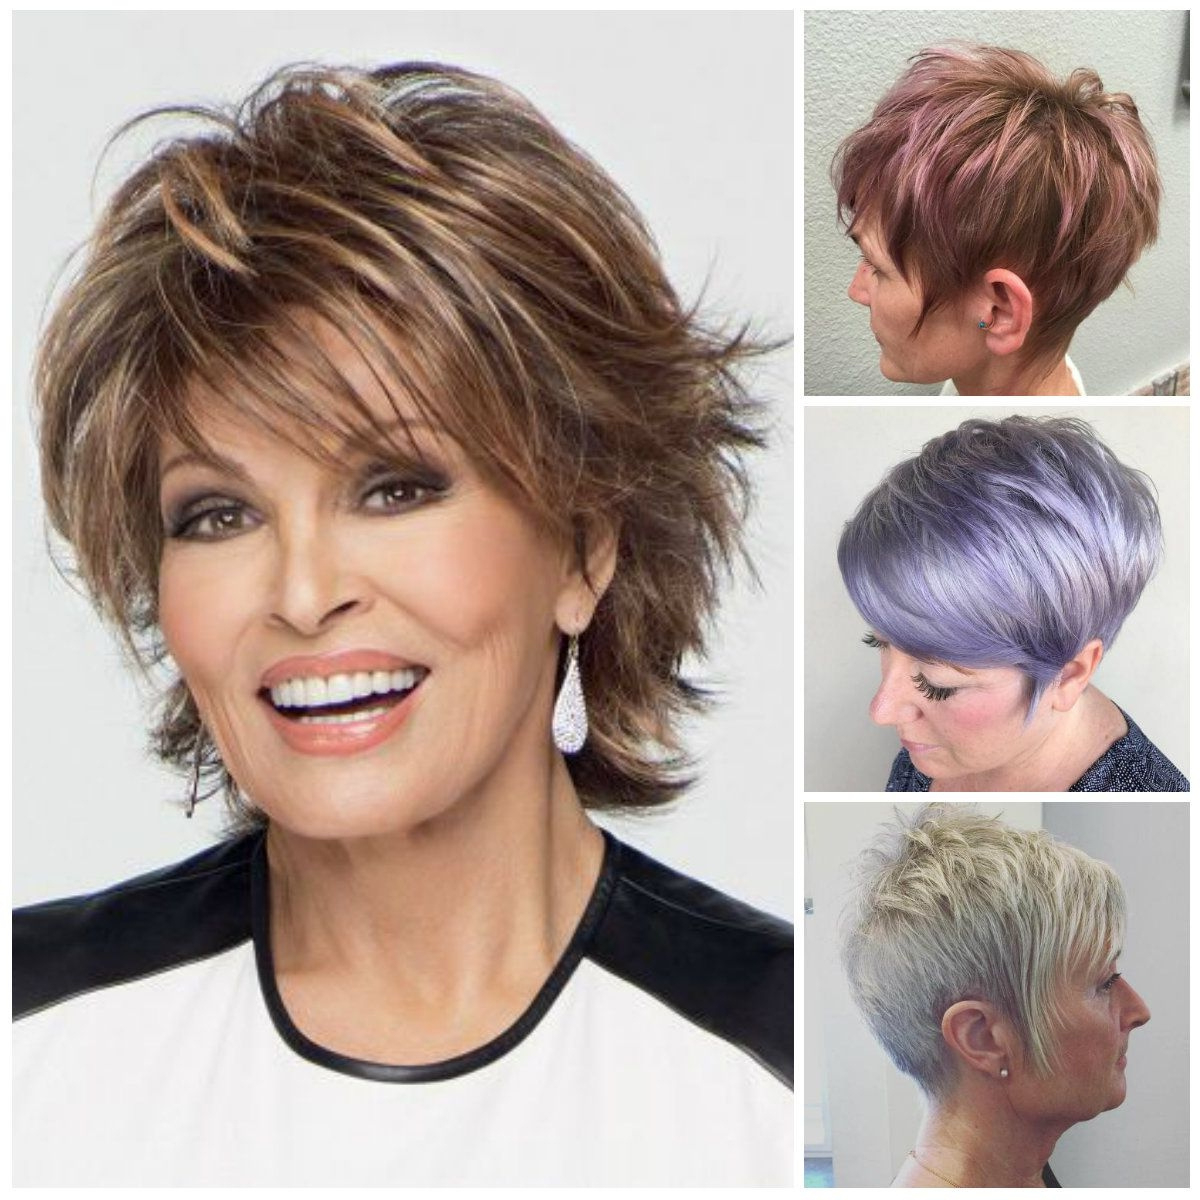 2019 Short Hairstyles For Over 60 Years Old With Glasses Awesome Throughout Short Haircuts For 60 Year Olds (View 20 of 25)